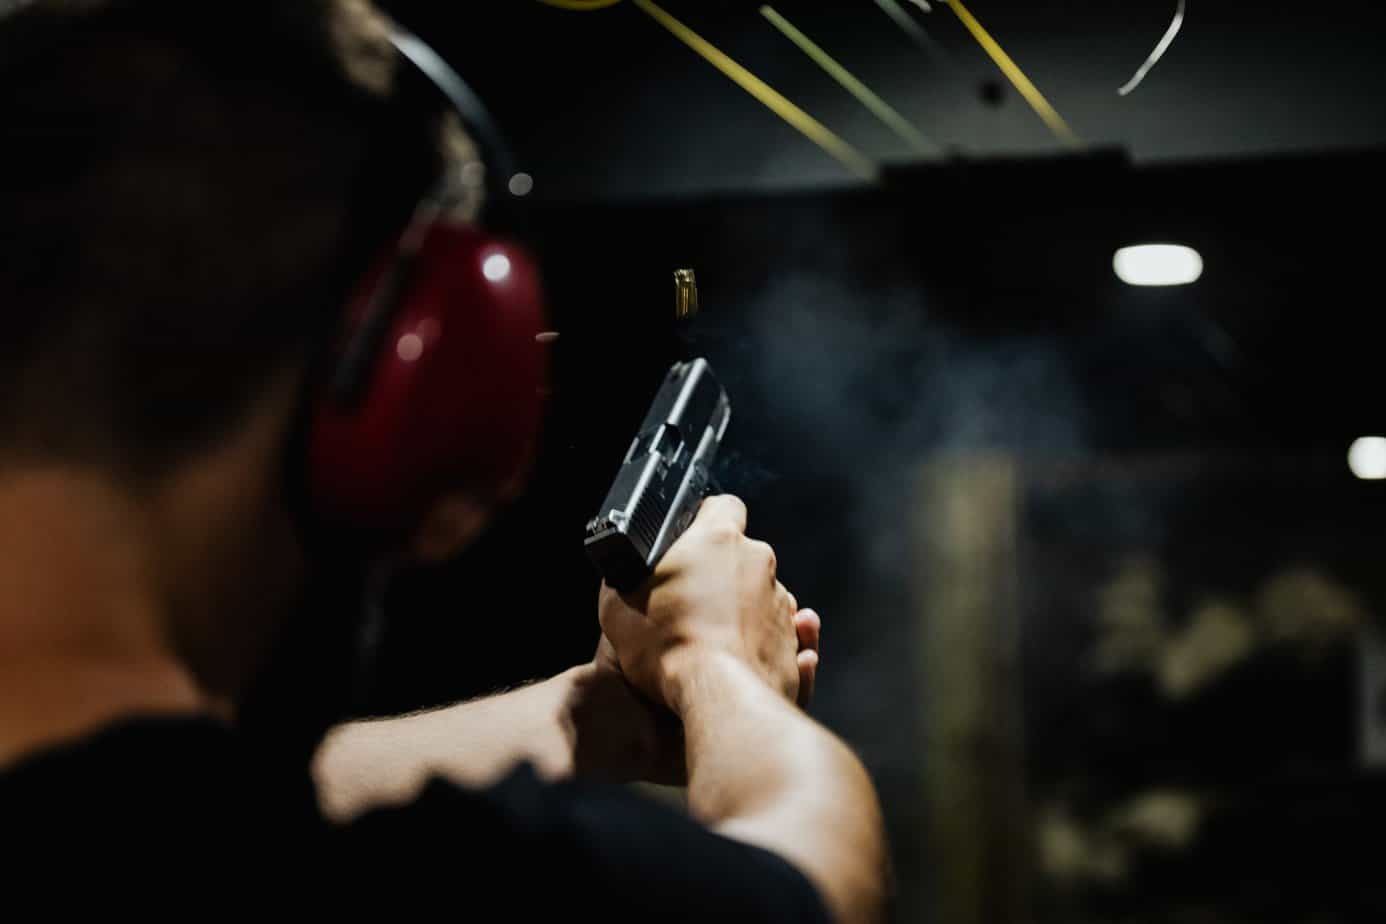 three drills for home defense you should master